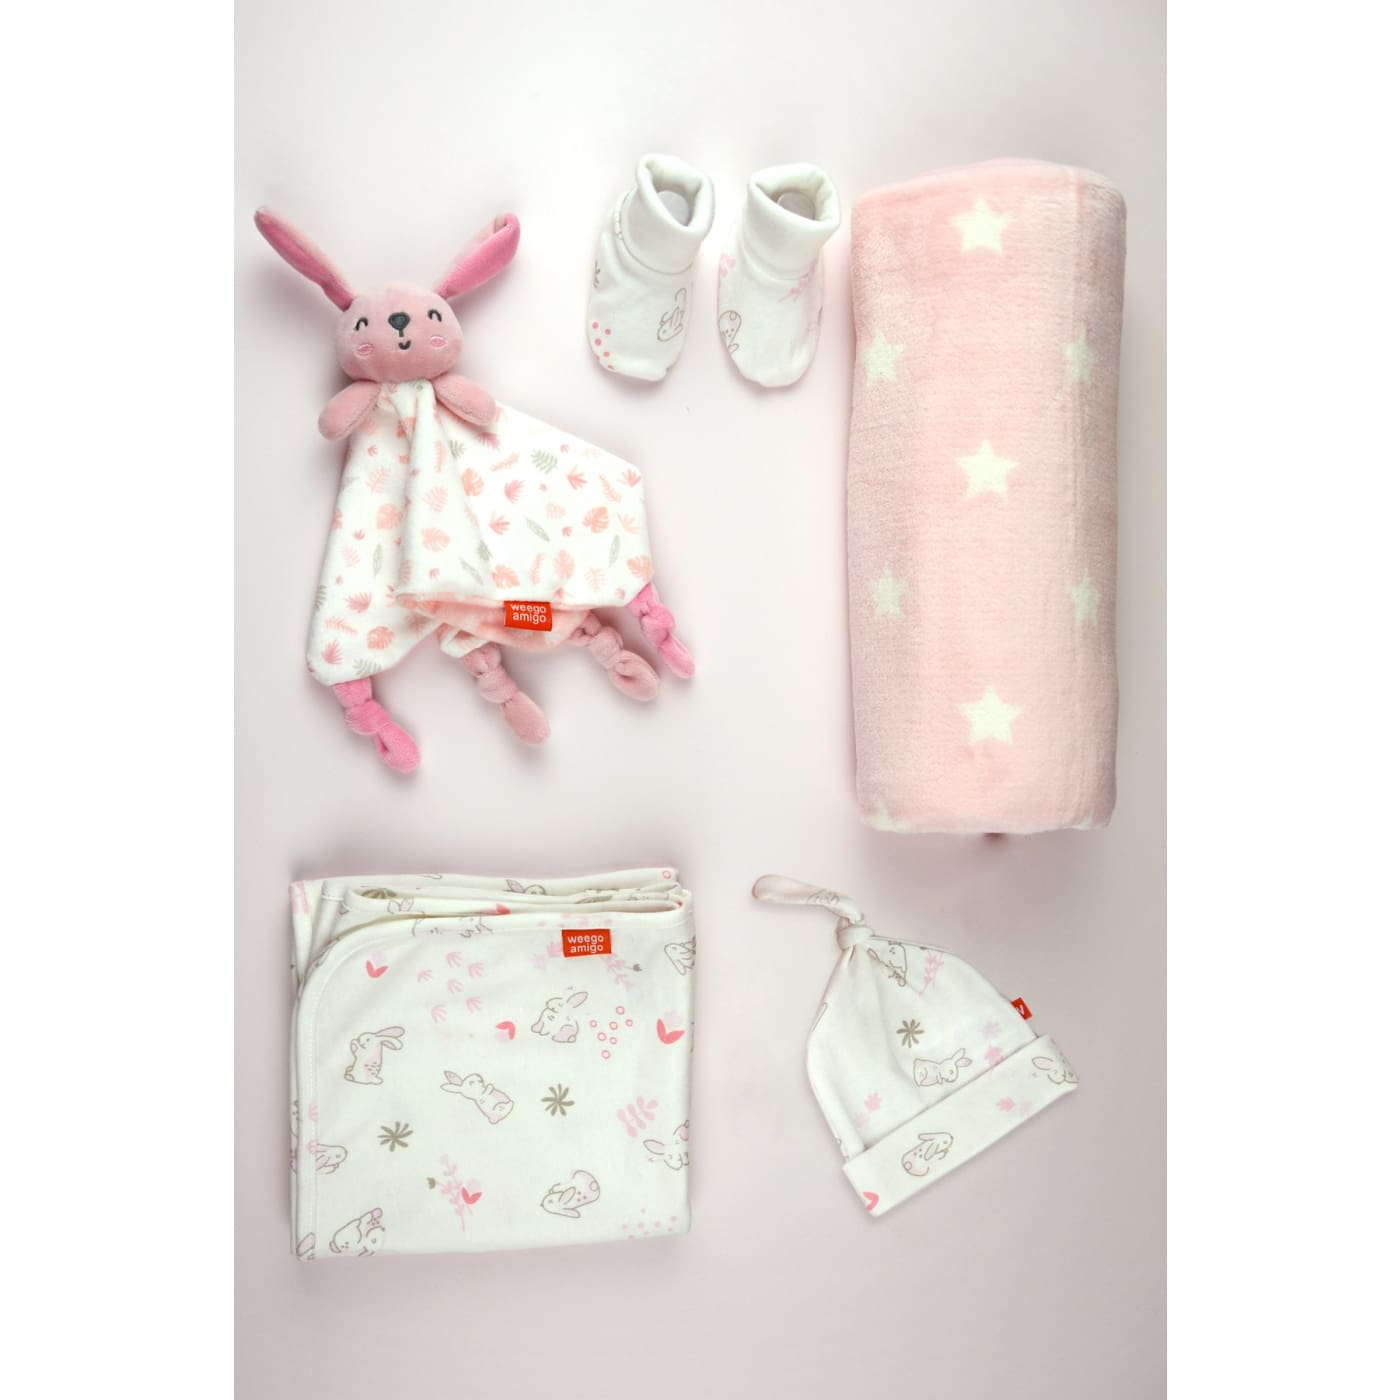 Weegoamigo Jersey and Fleece Gift Set - Bonnie the Bunny - Bunny - NURSERY & BEDTIME - SWADDLES/WRAPS